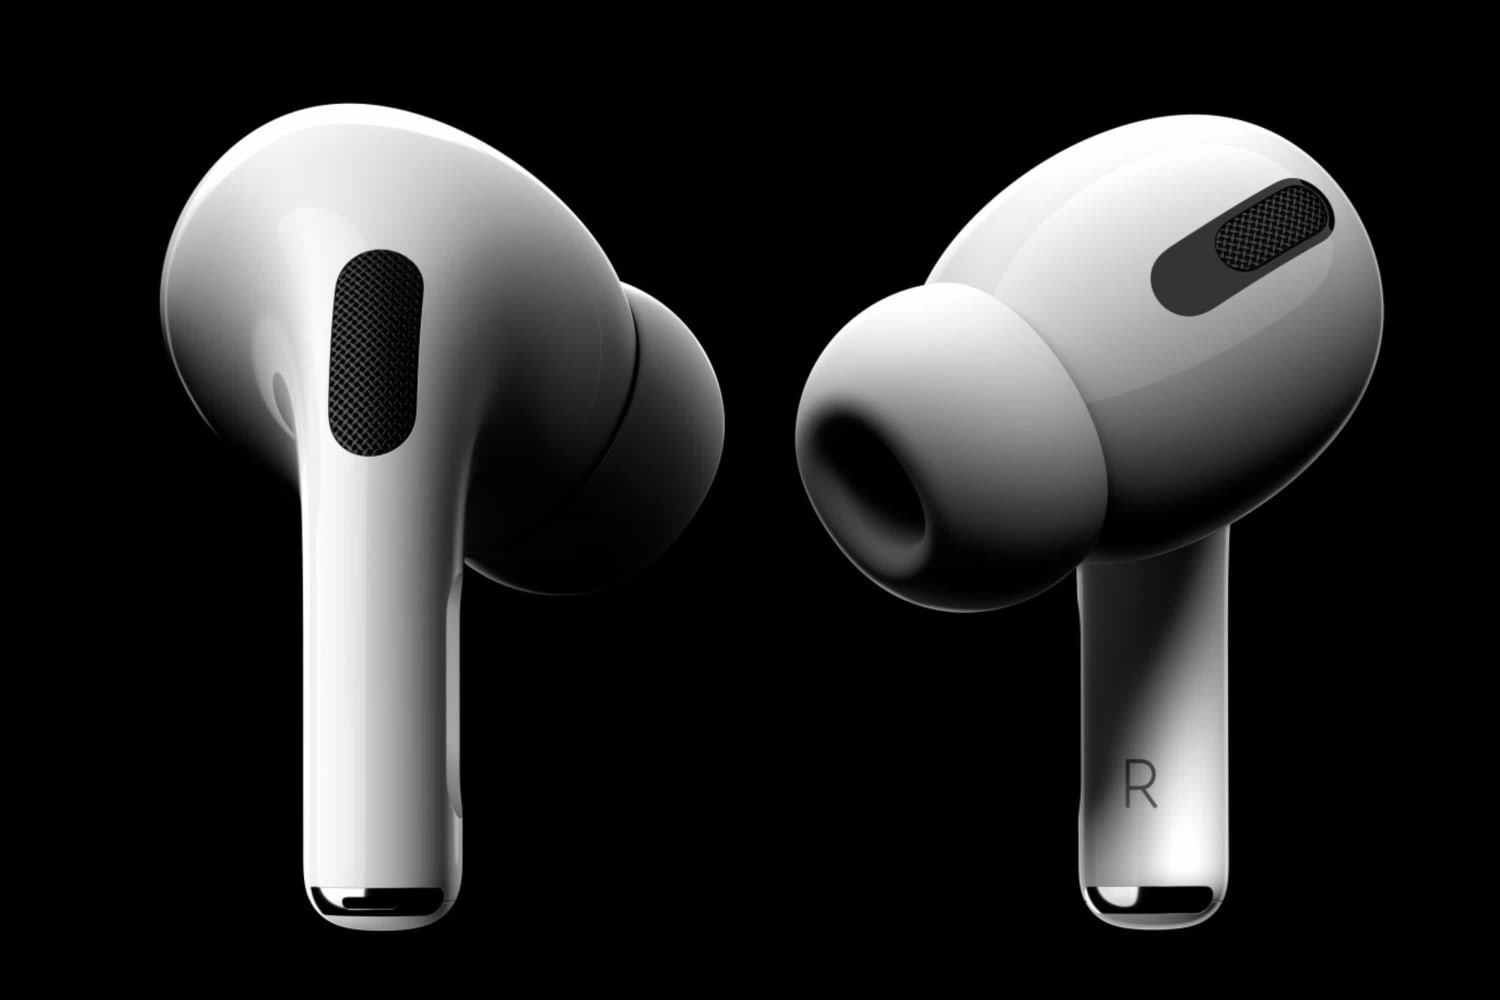 airpods-sales-seemingly-soar-high-into-2021-20201125-1